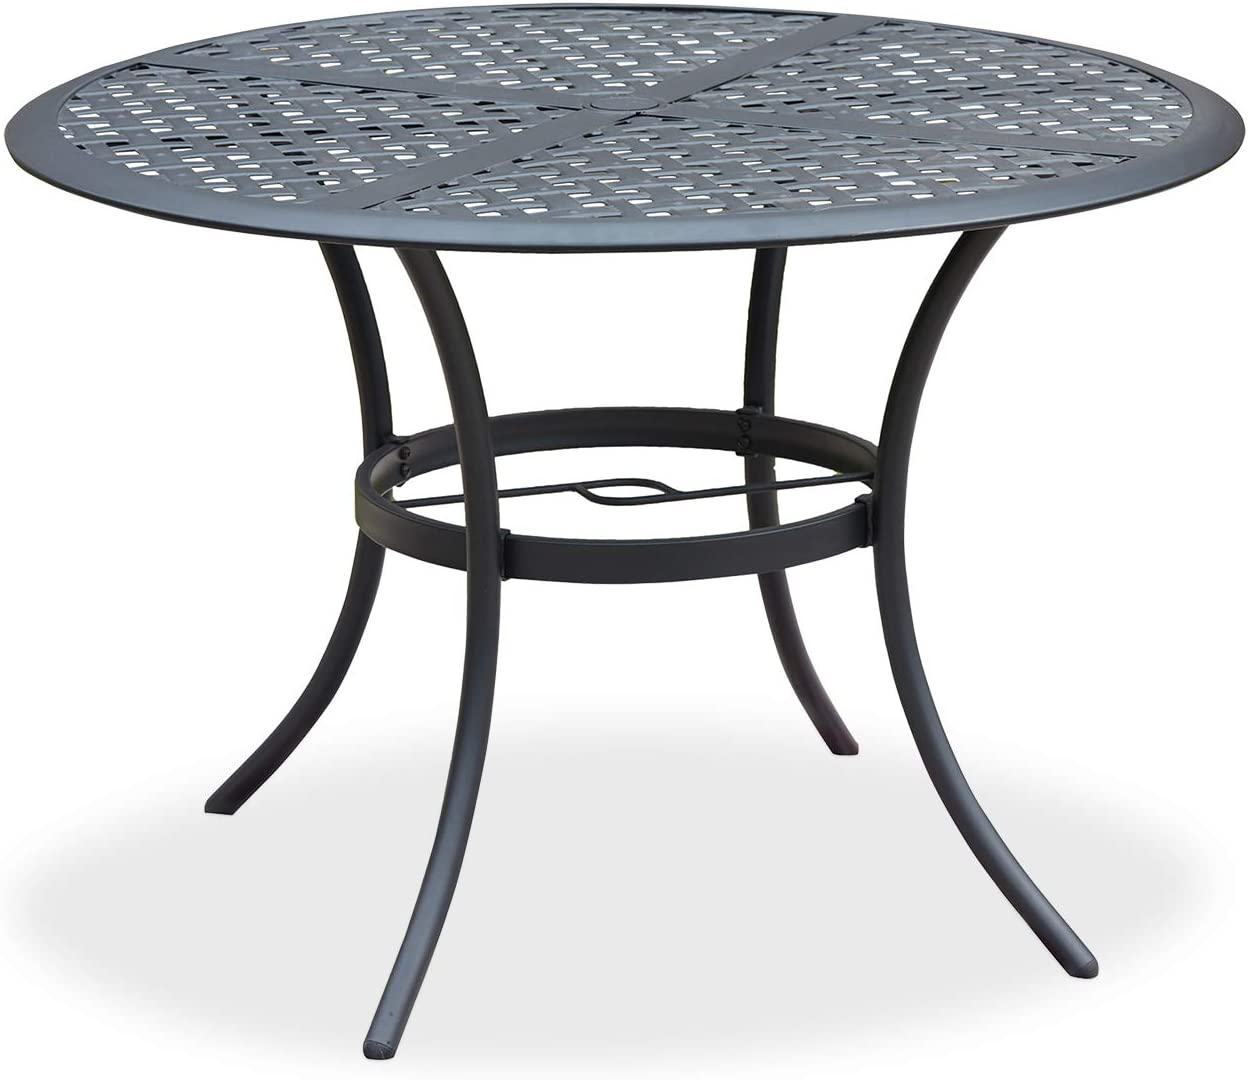 """Romayard 42 Inch Outdoor Dining Table Round Patio Bistro Table Powder-Coated Steel Frame Top Patio Dining Table Outdoor Furniture Garden Table with 2.1"""" Umbrella Hole (Black)"""